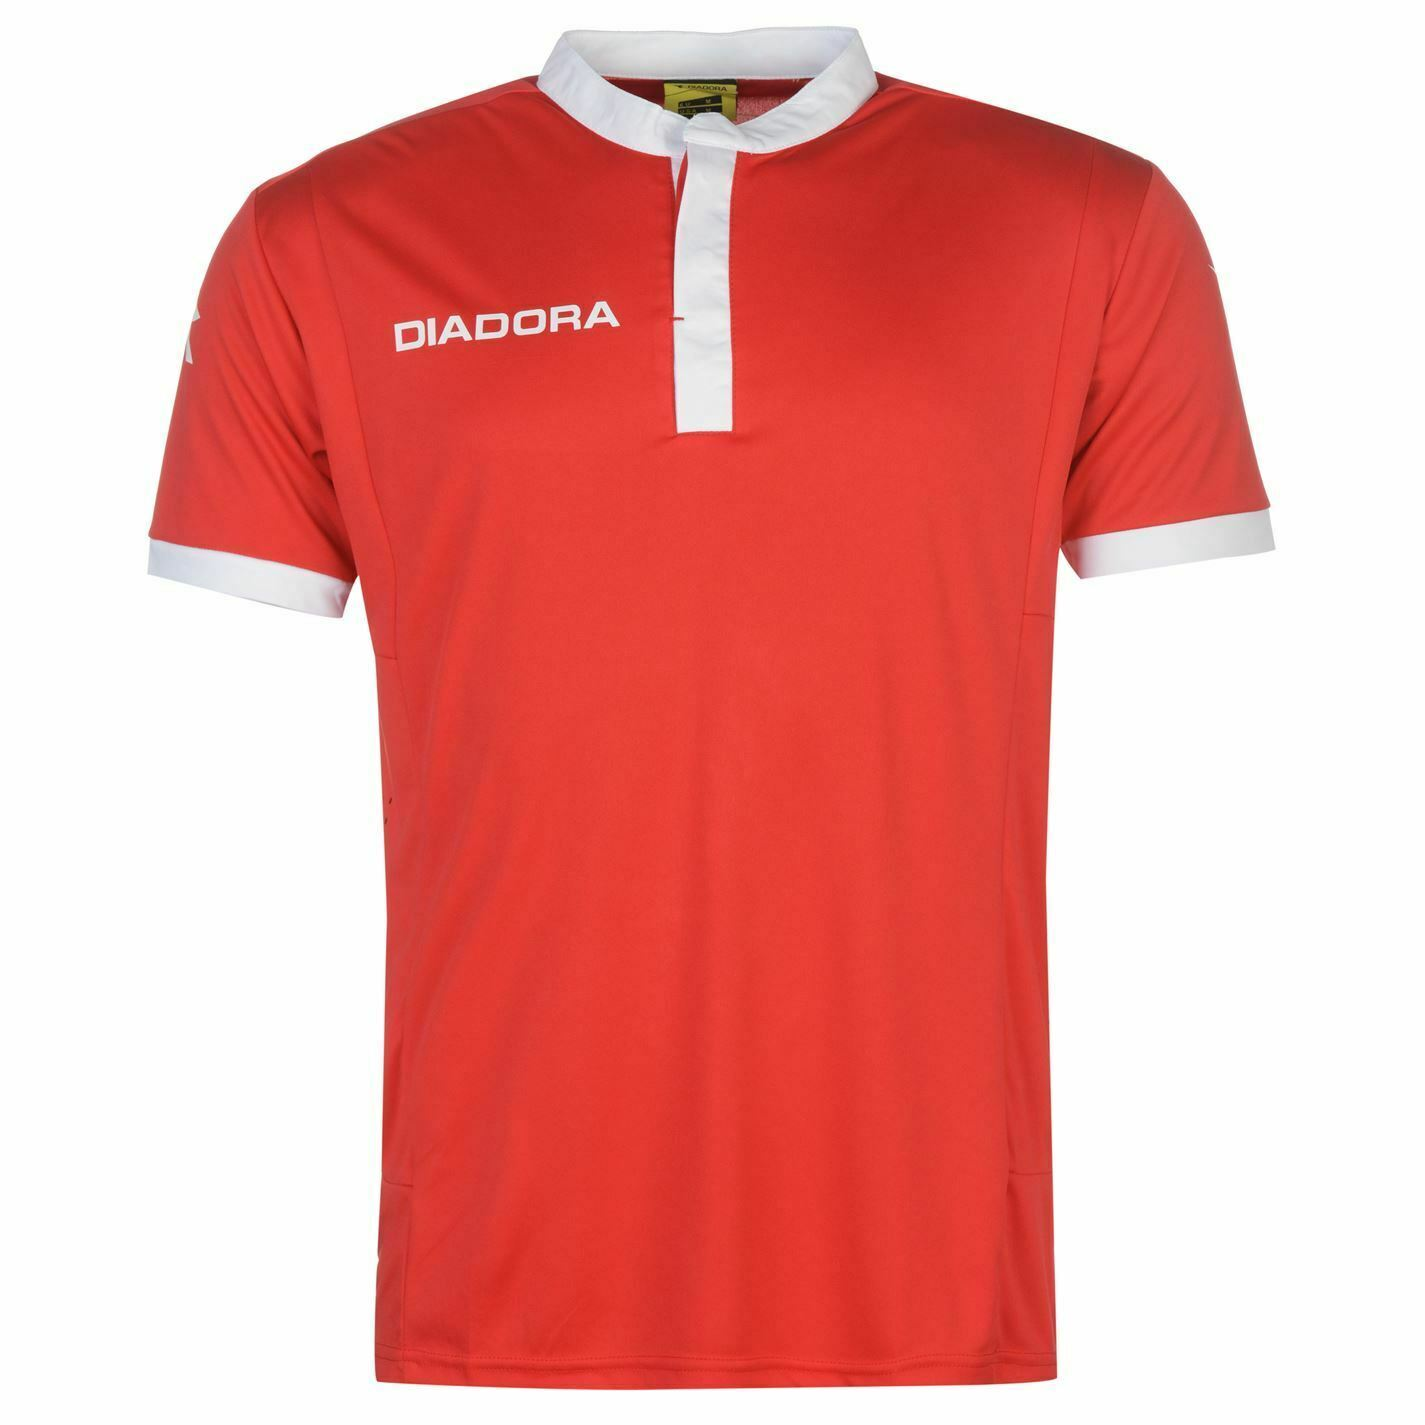 Diadora Fresno Training T-Shirt Mens Red White Football Soccer Top Tee Shirt